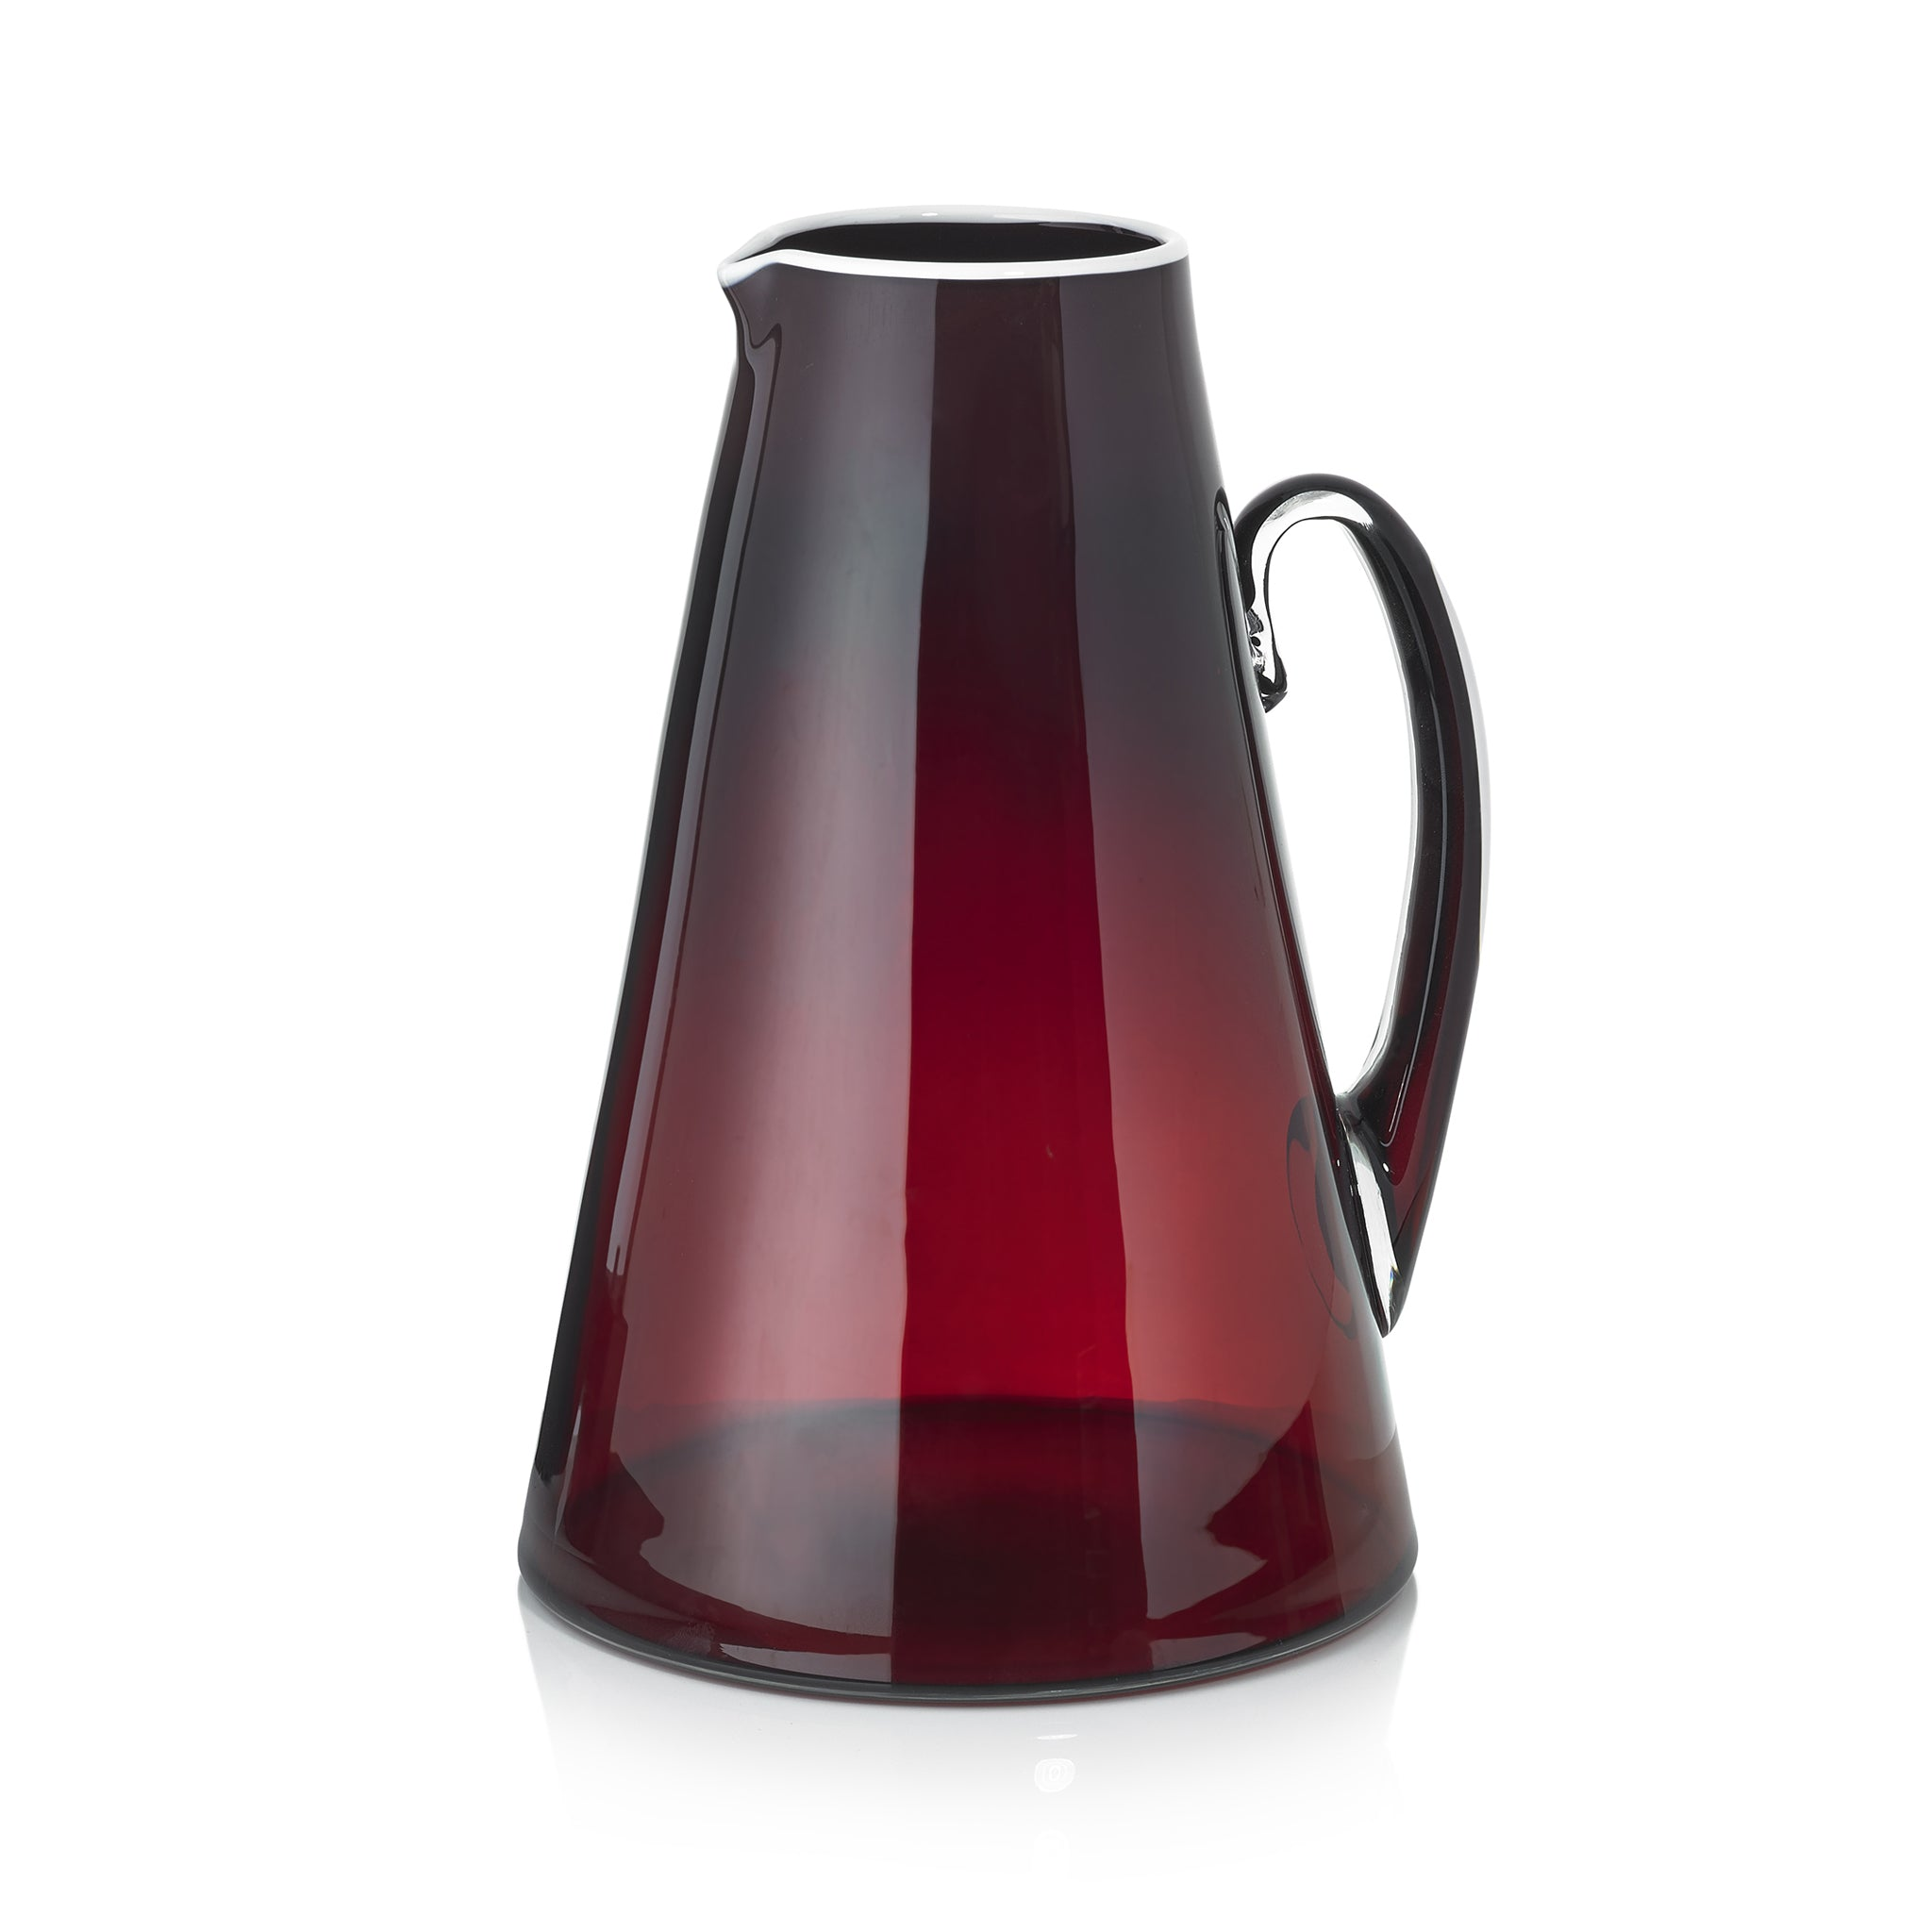 Handblown Glass Bumba Jug in Claret Red